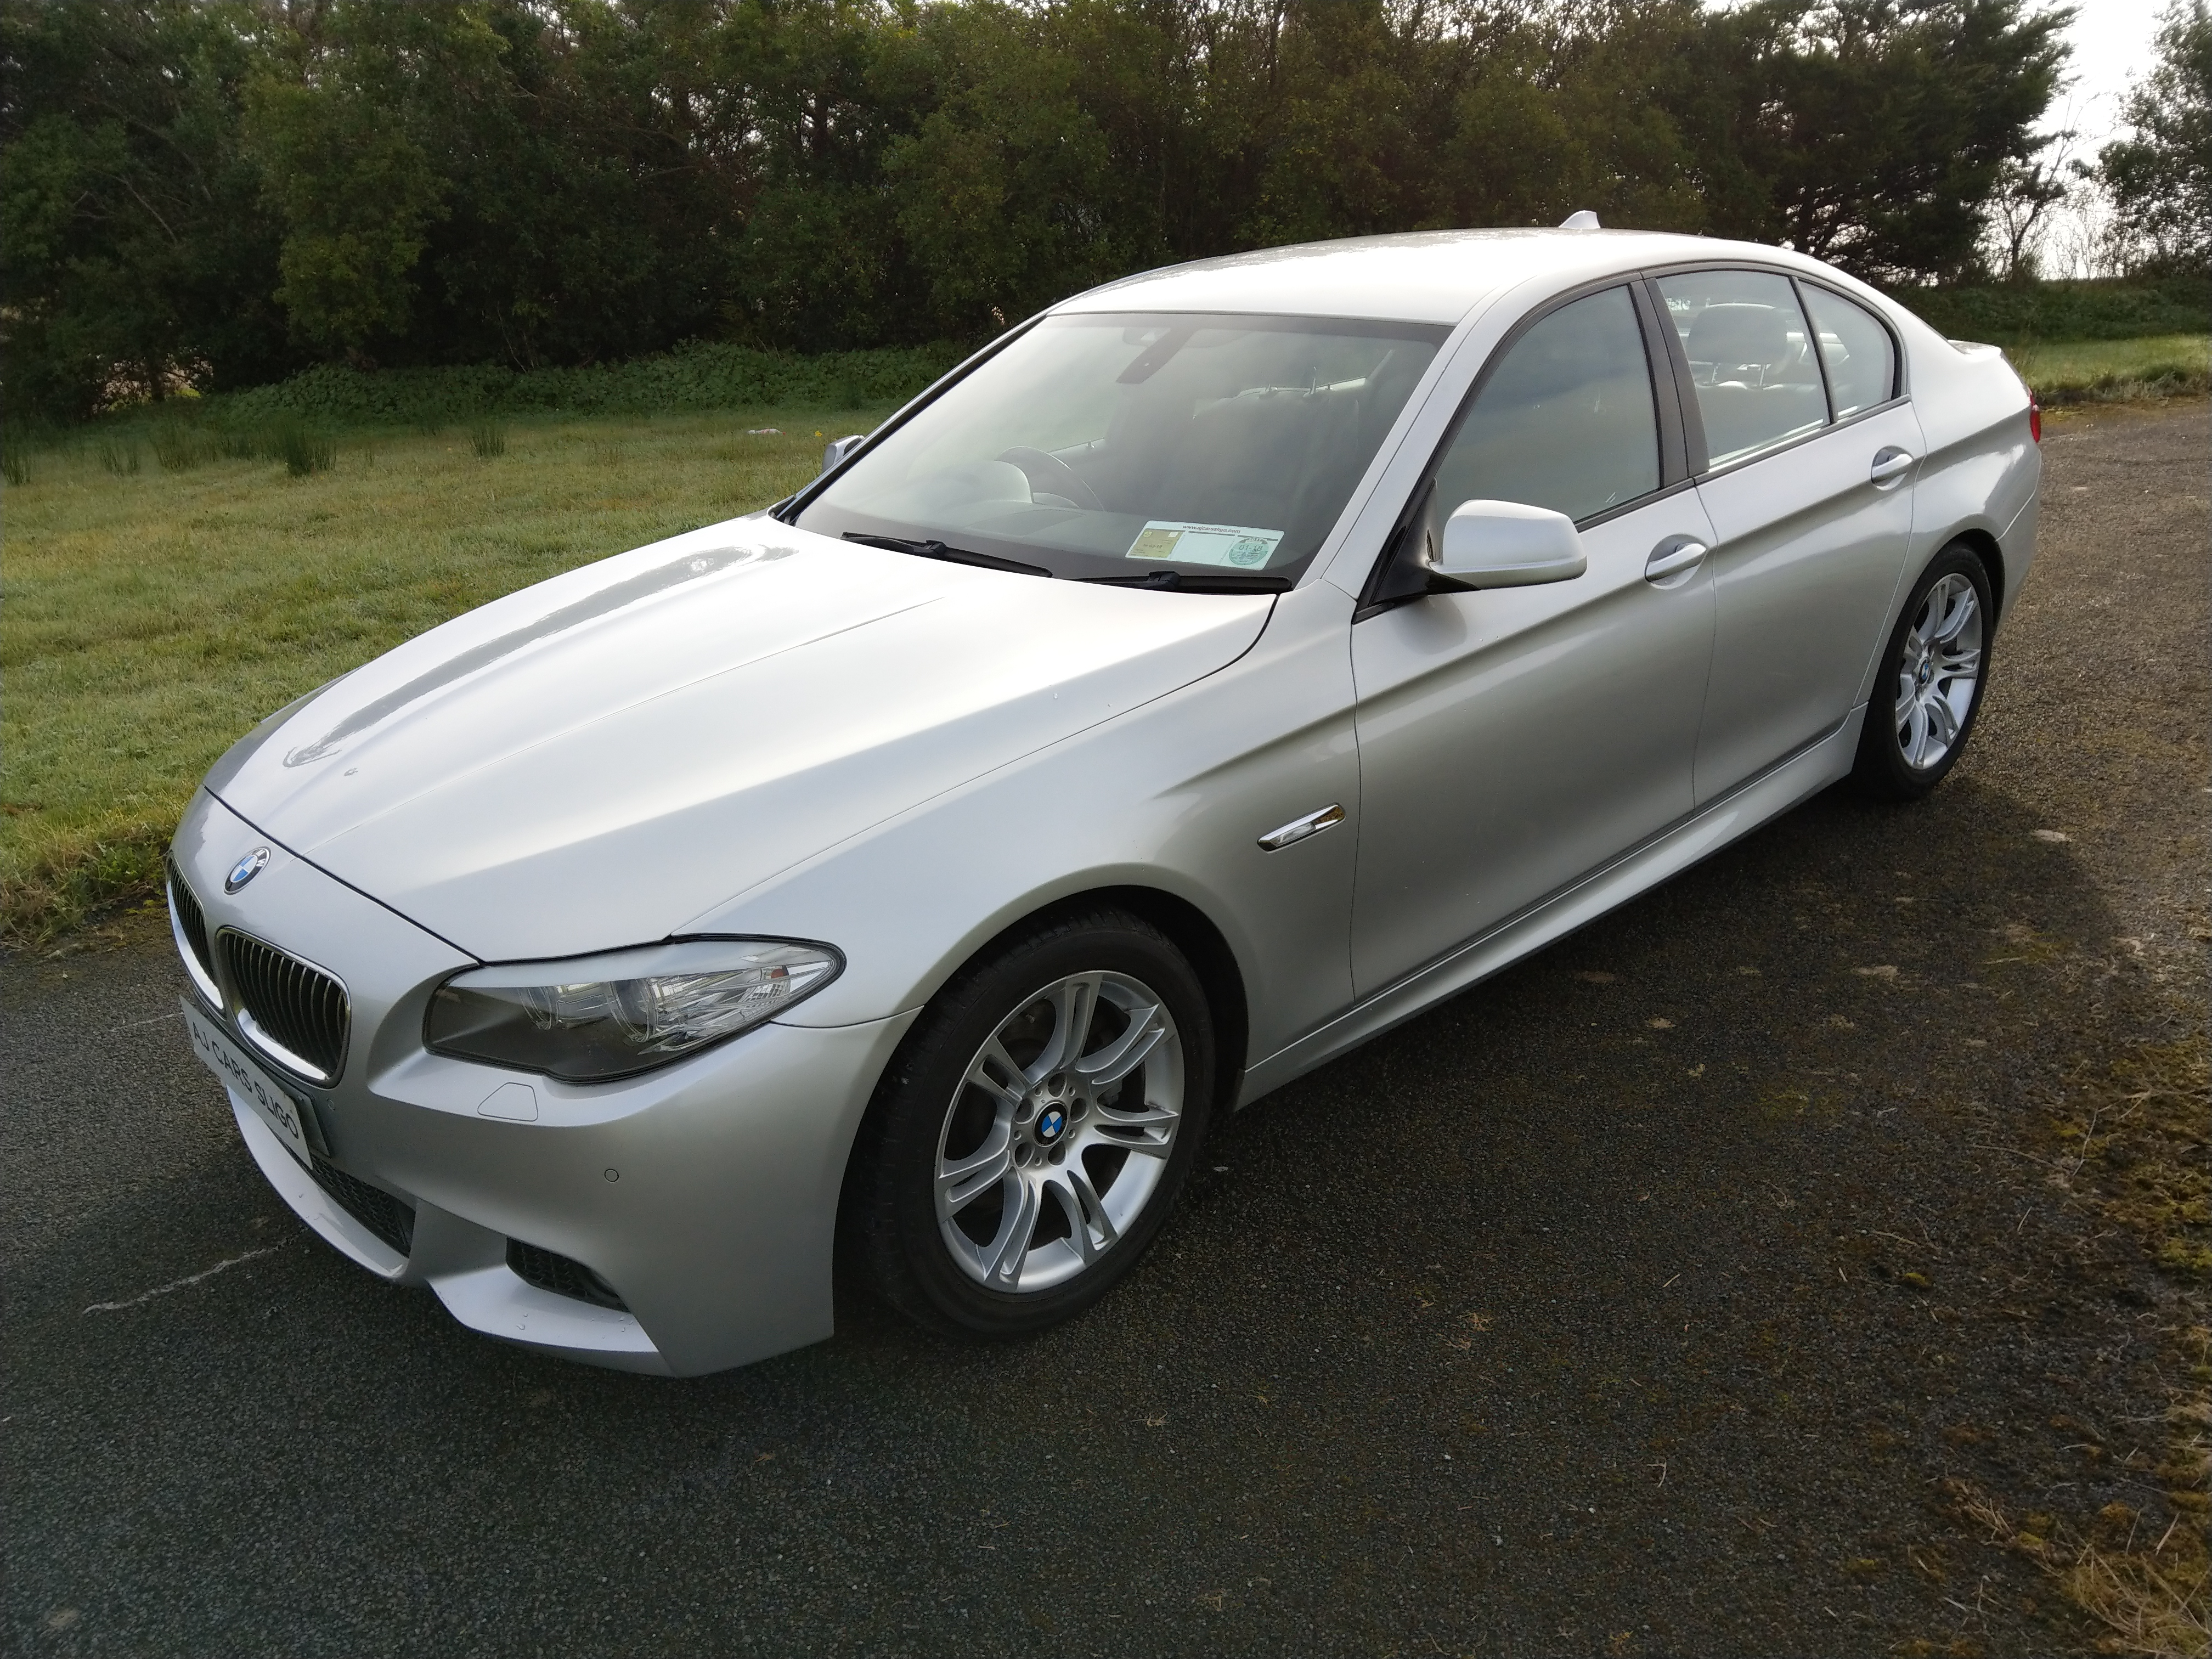 Cars for Sale Near Me Under 3000 Inspirational Lovely Cars for Sale Near Me Under 3000